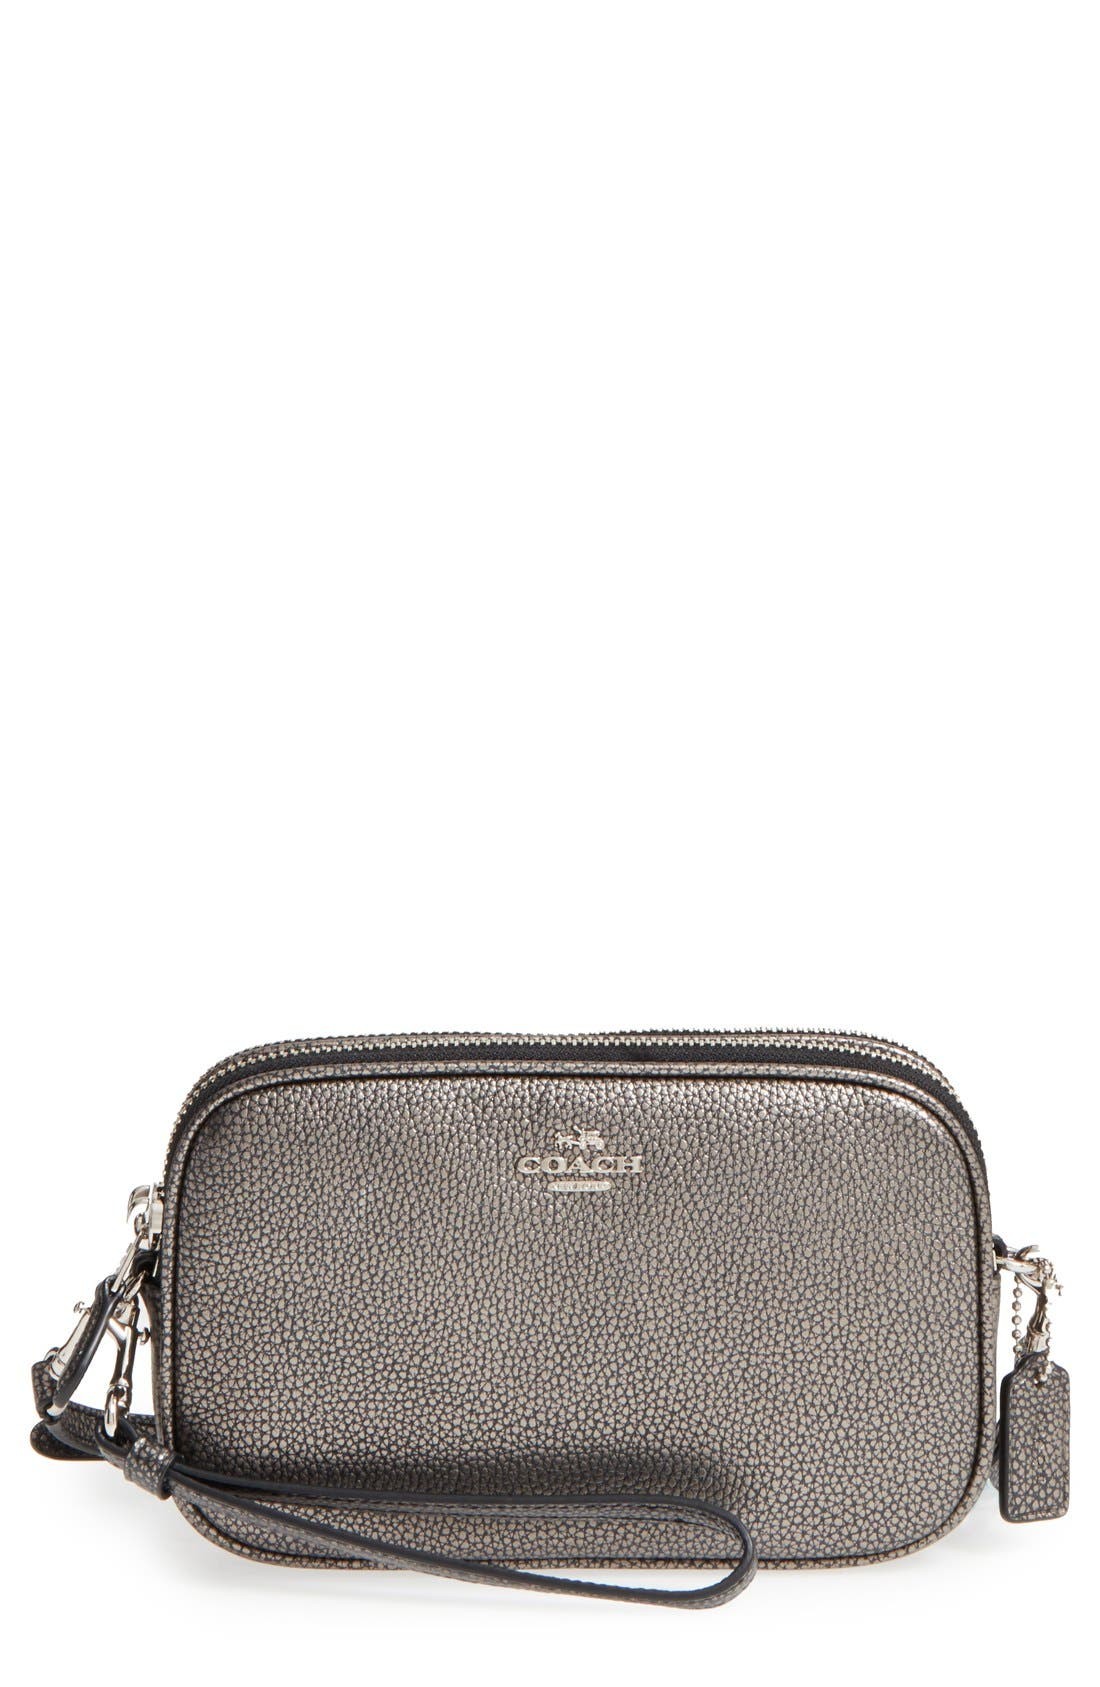 Alternate Image 1 Selected - COACH Convertible Leather Crossbody Bag